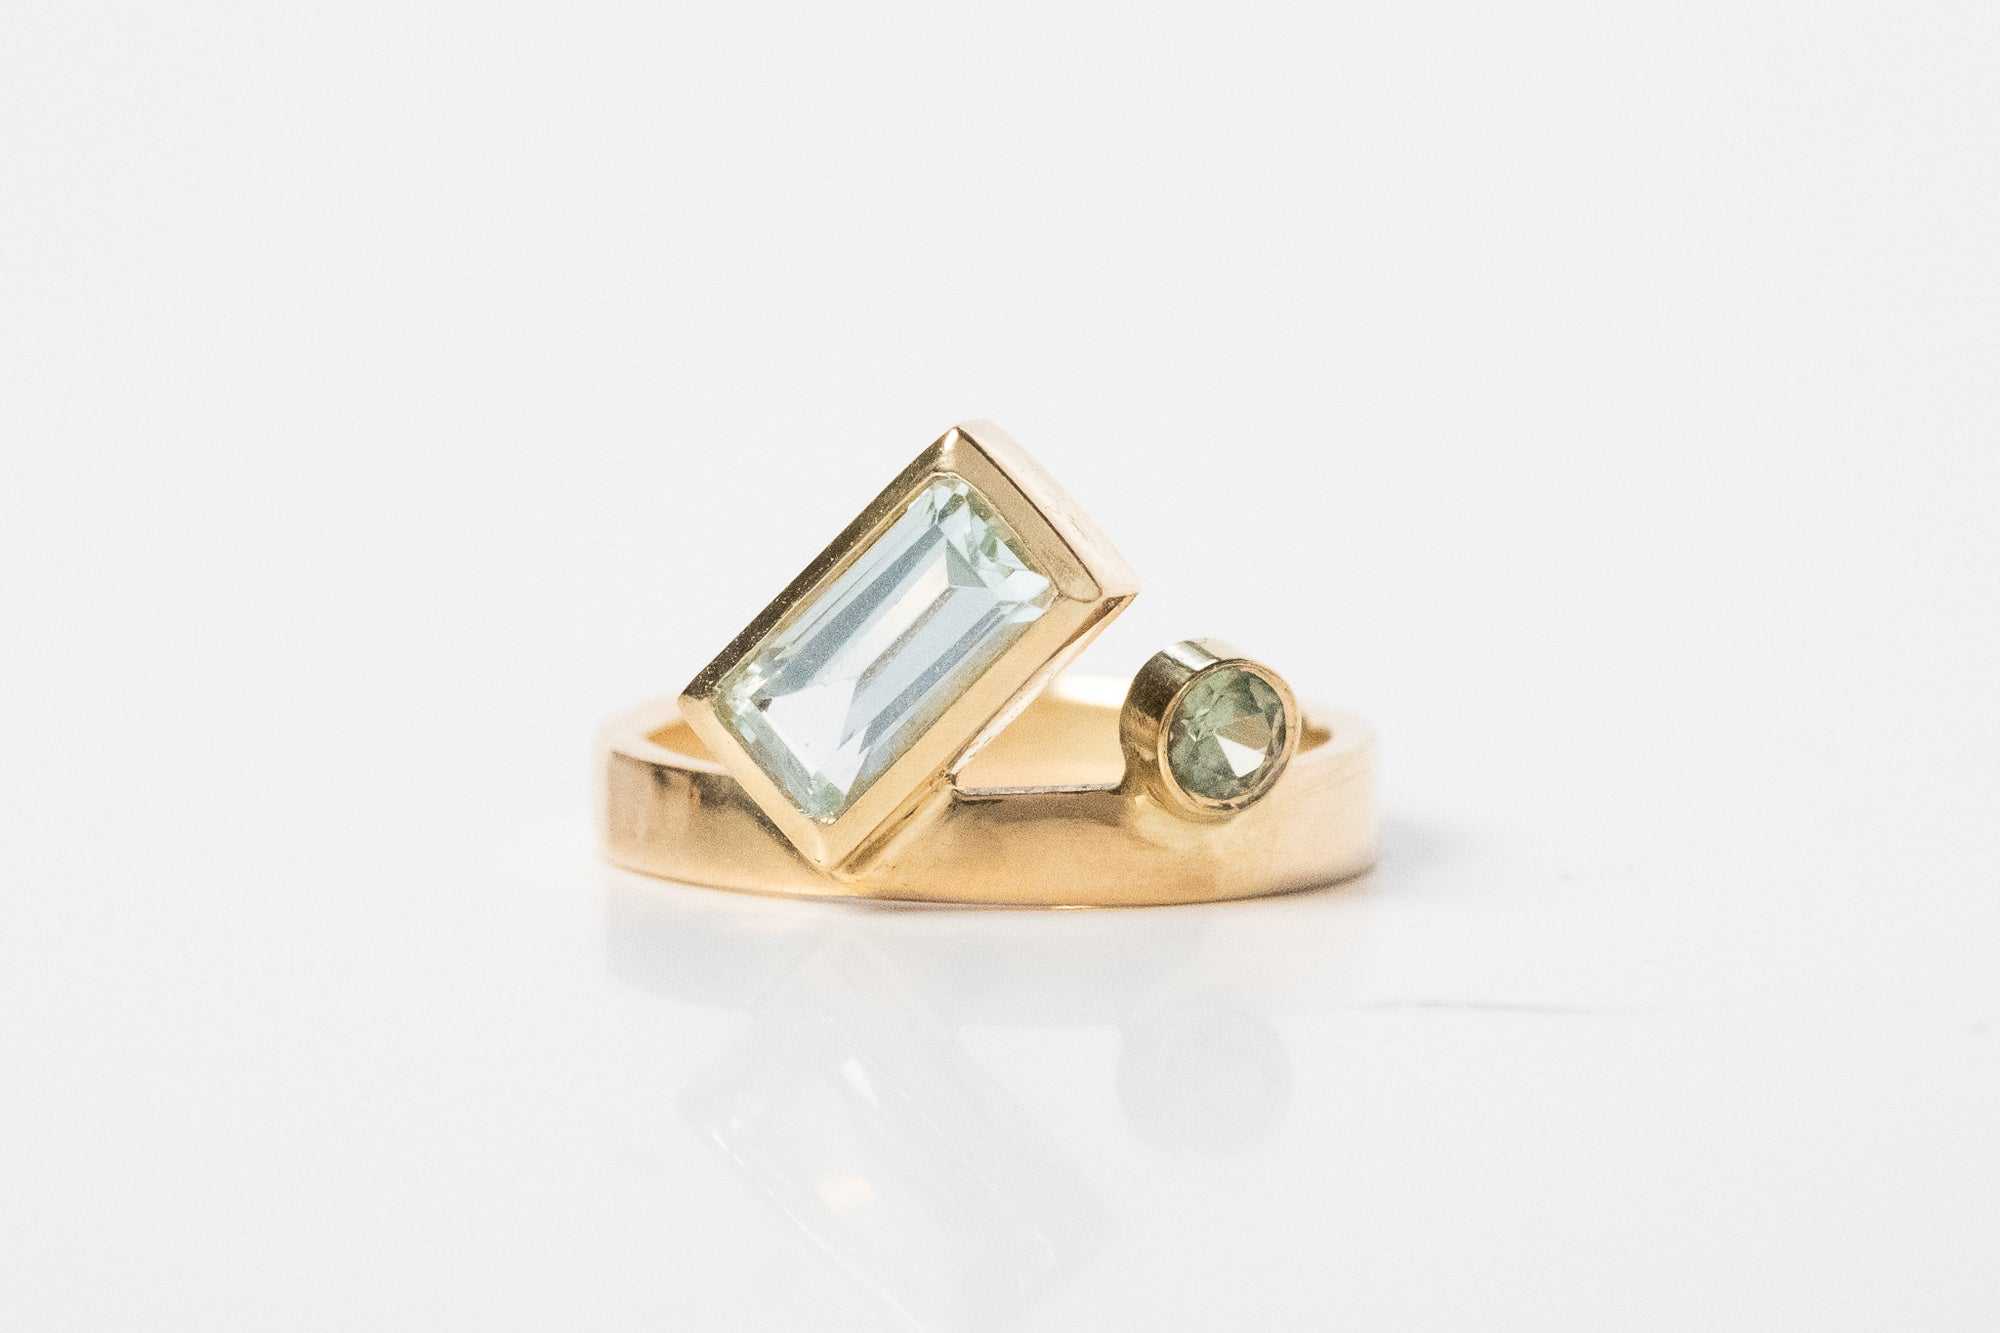 Gold ring with emerald cut, bezel set aquamarine, set at an angle and a small, round, green sapphire set atop the ring band